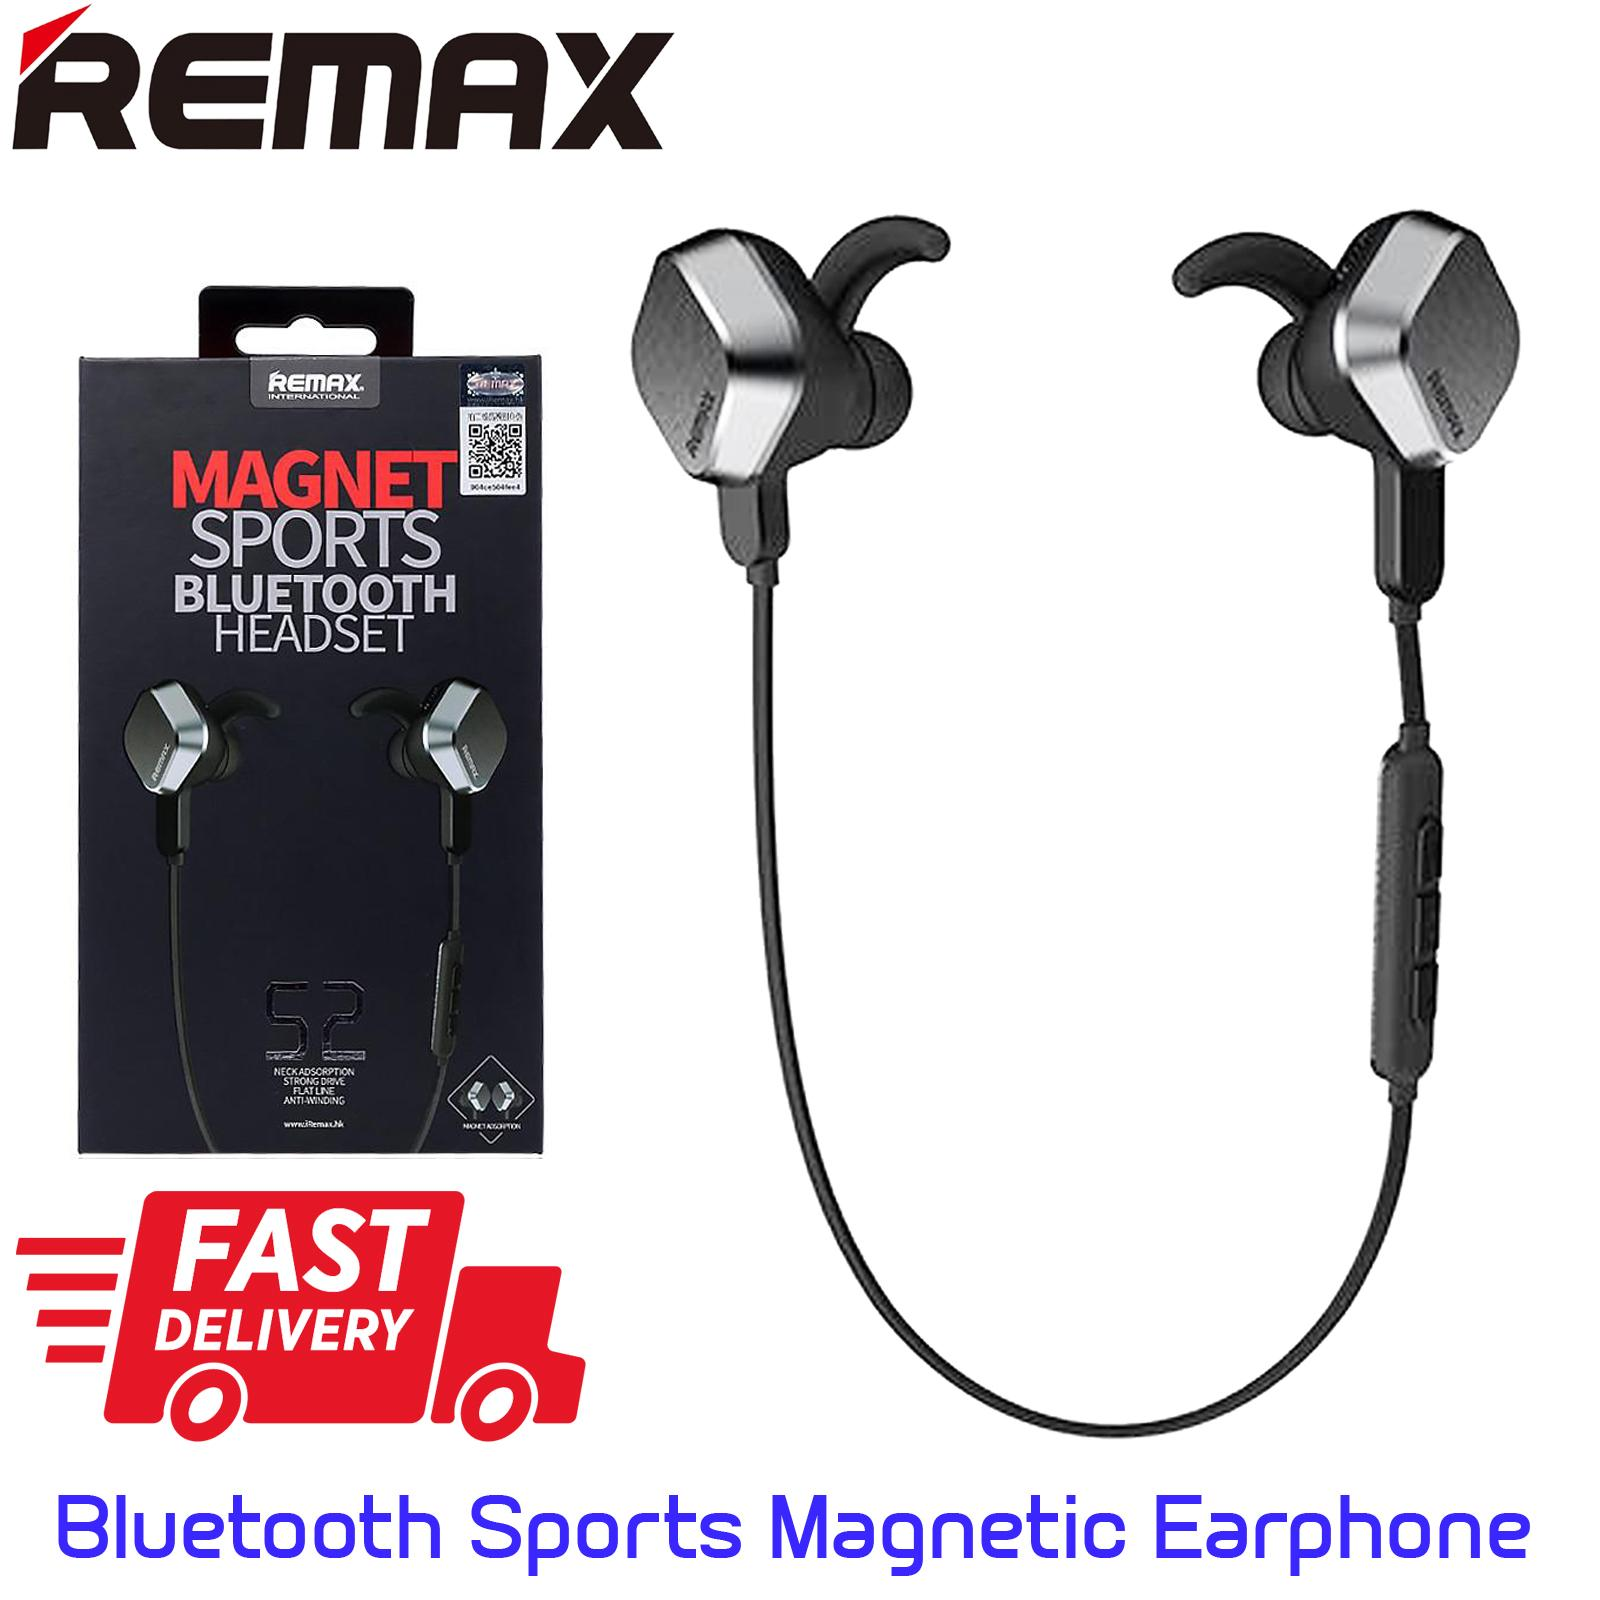 REMAX RM S2 Sports Magnet Headset